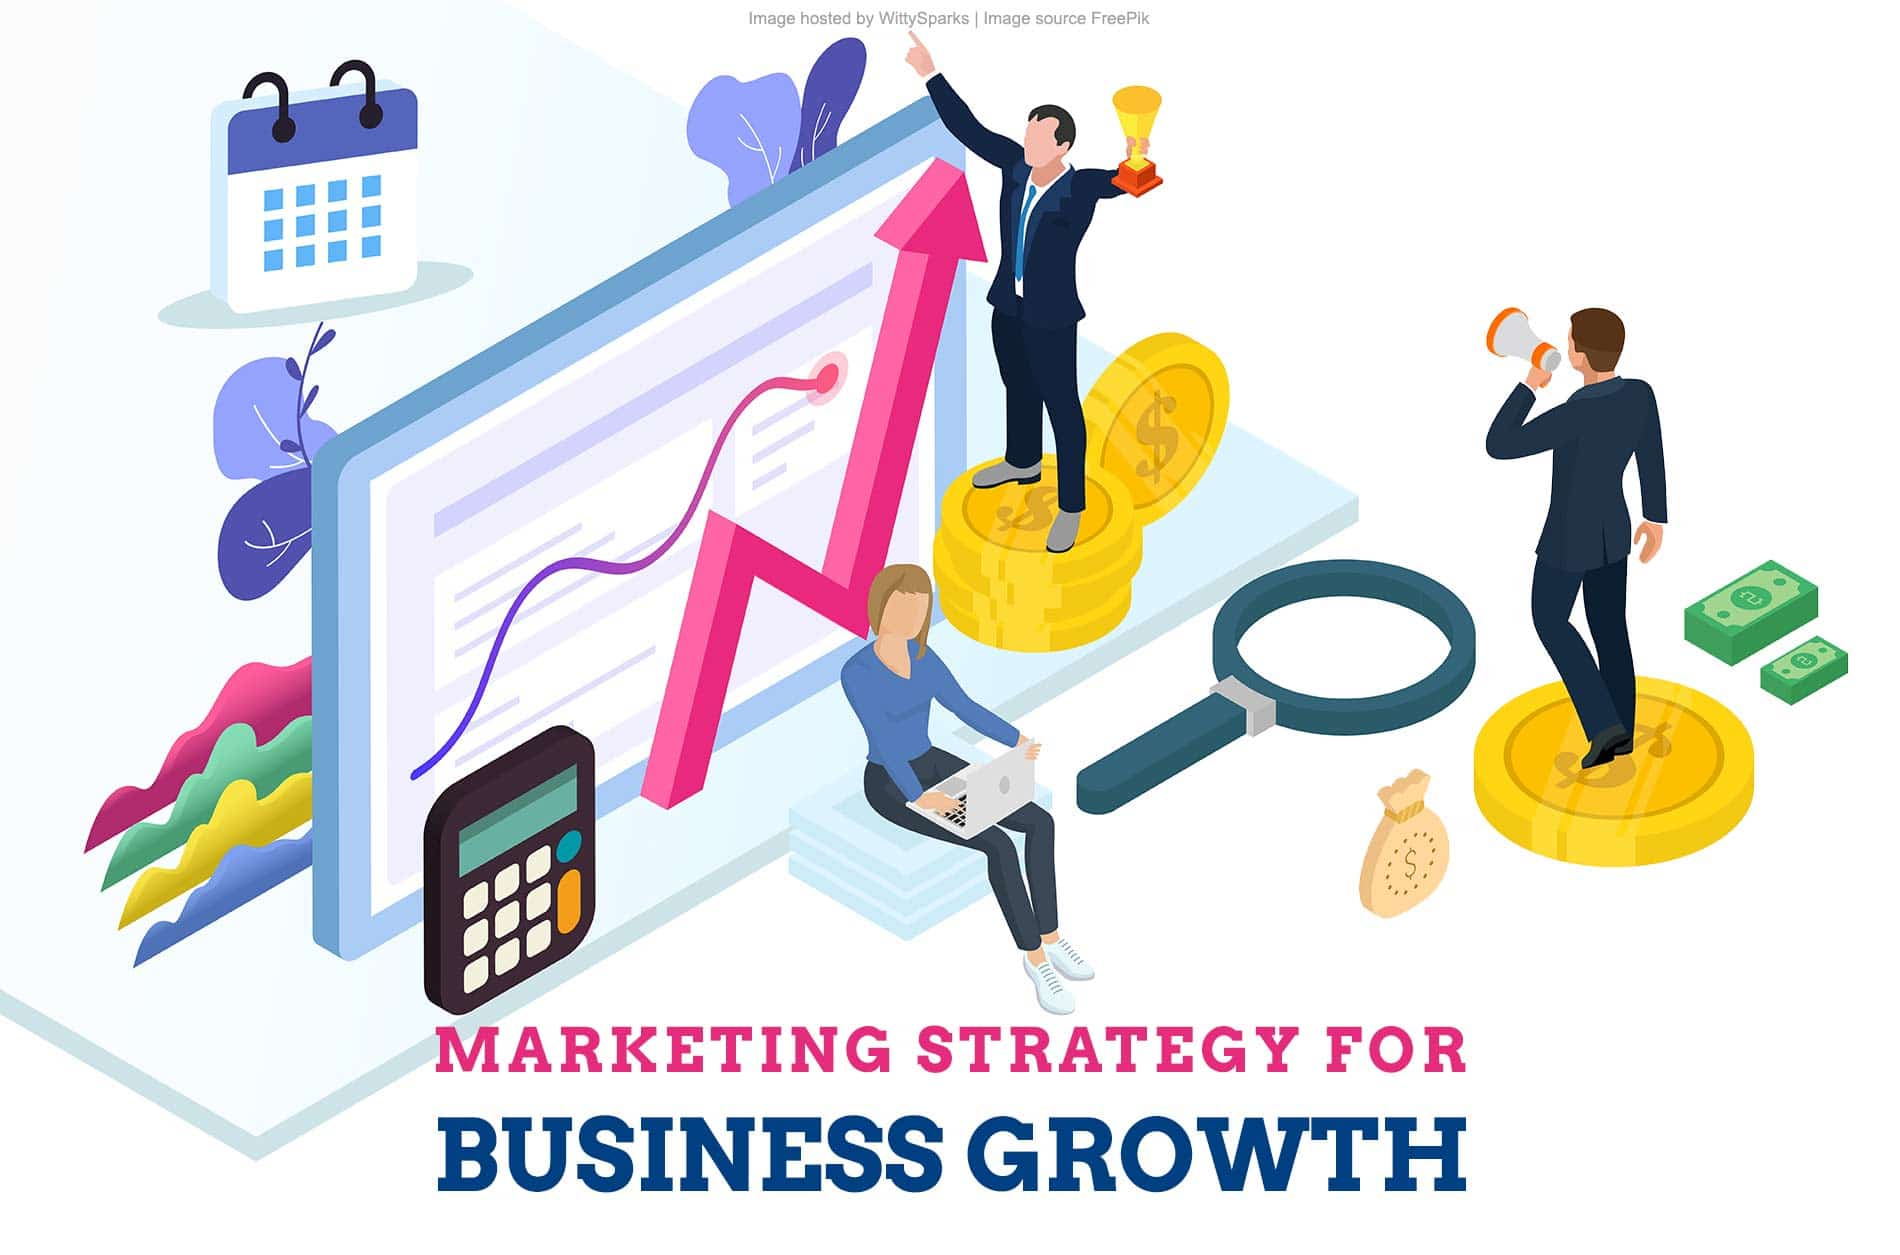 Marketing Strategy for Business Growth